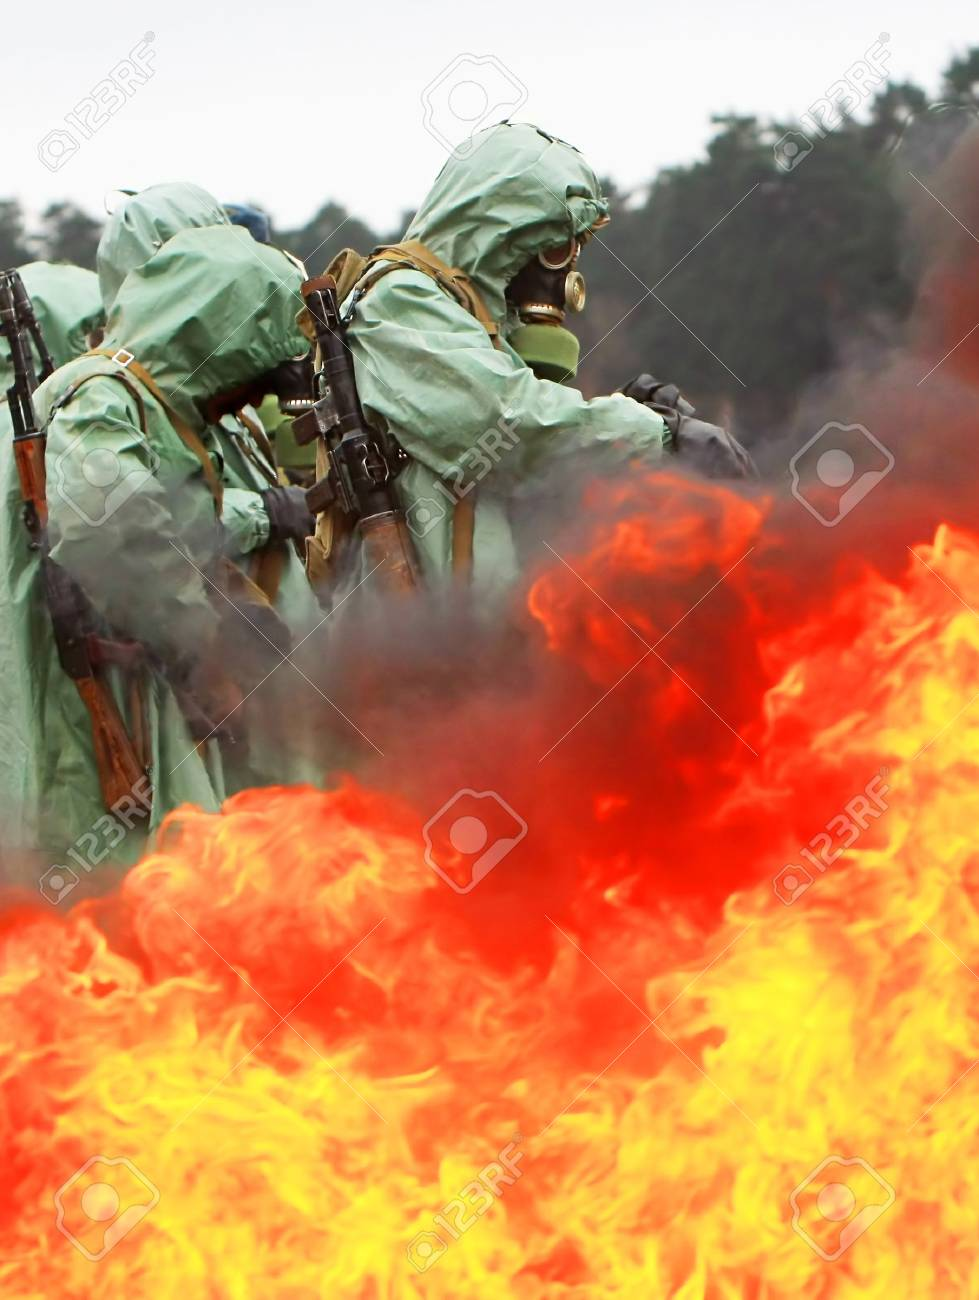 soldiers dress chemical protection suites. Stock Photo - 4382236